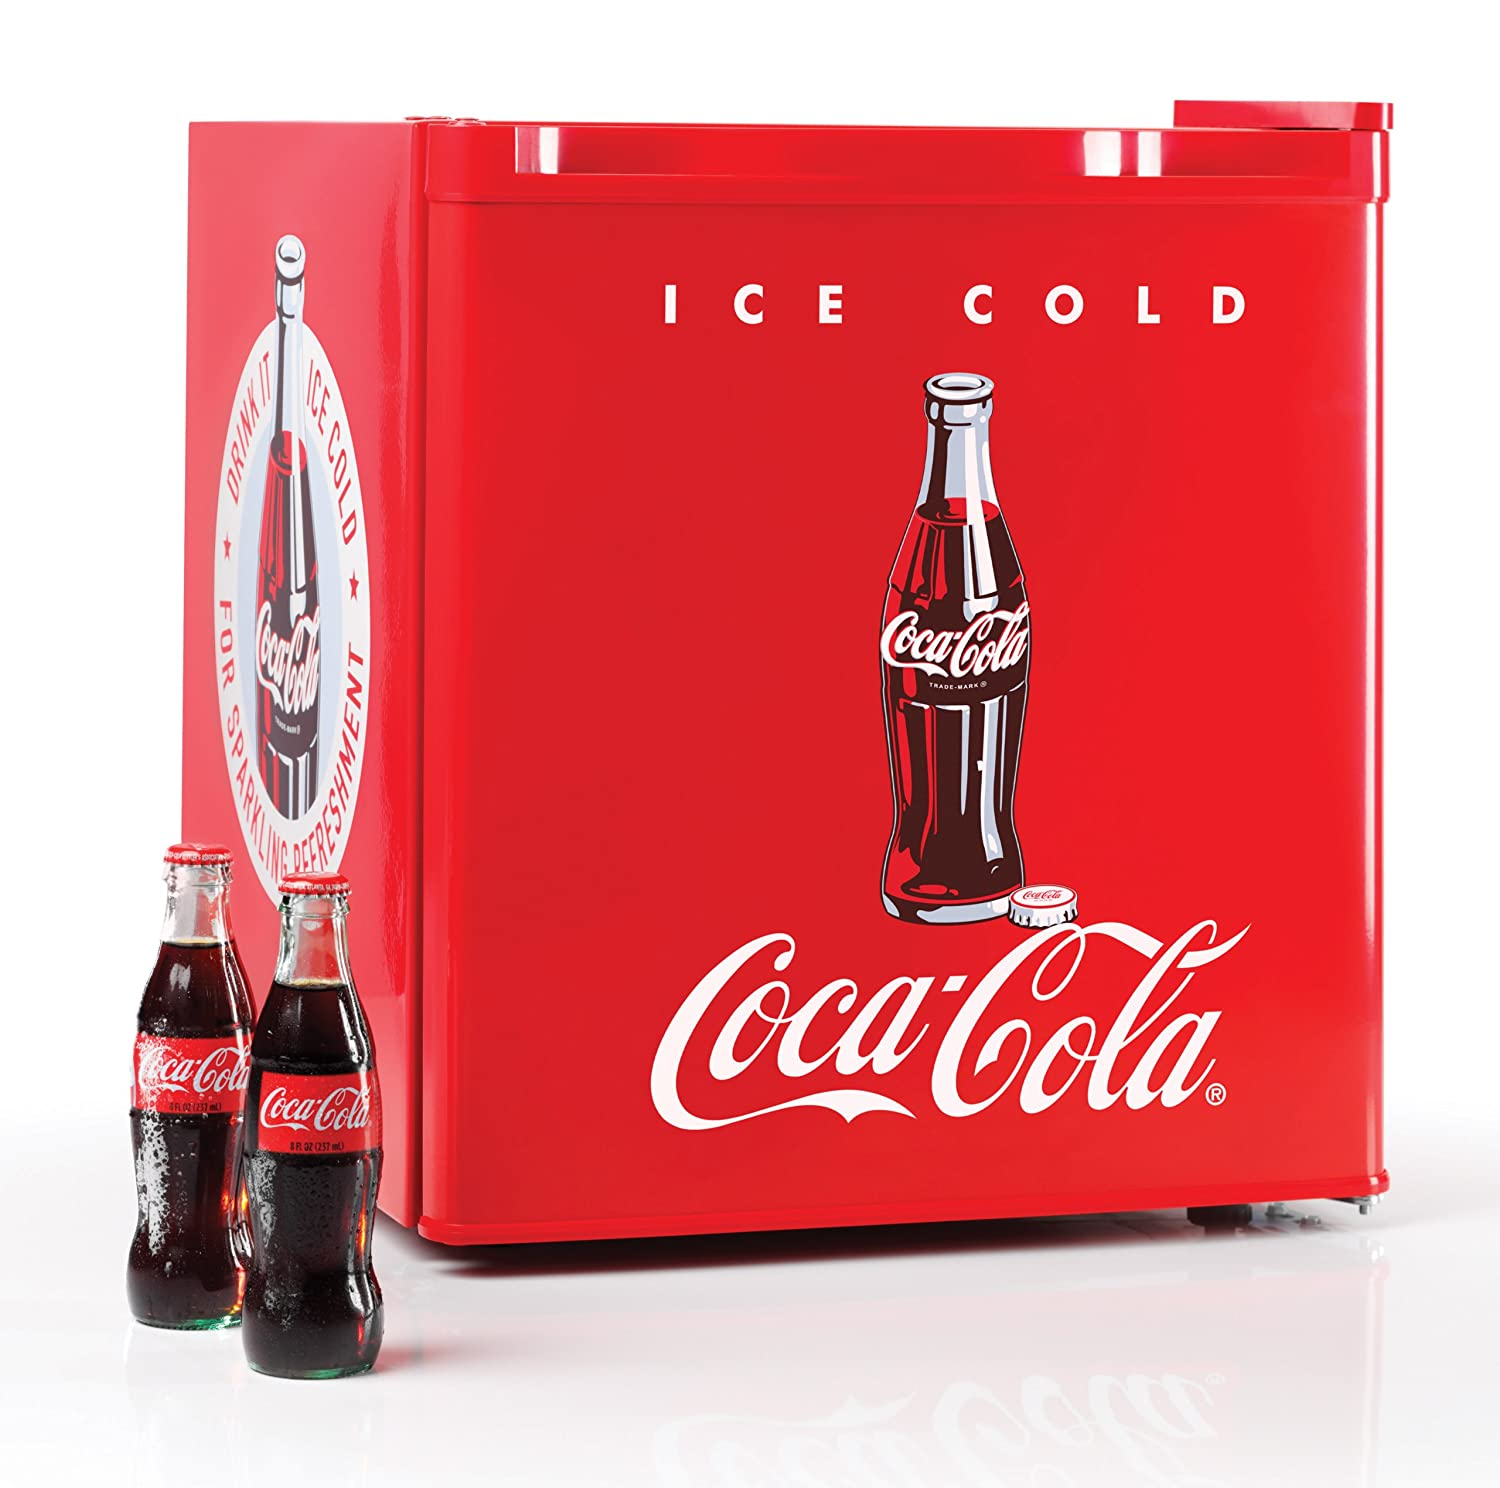 Antique, Vintage and Retro Coke Machines